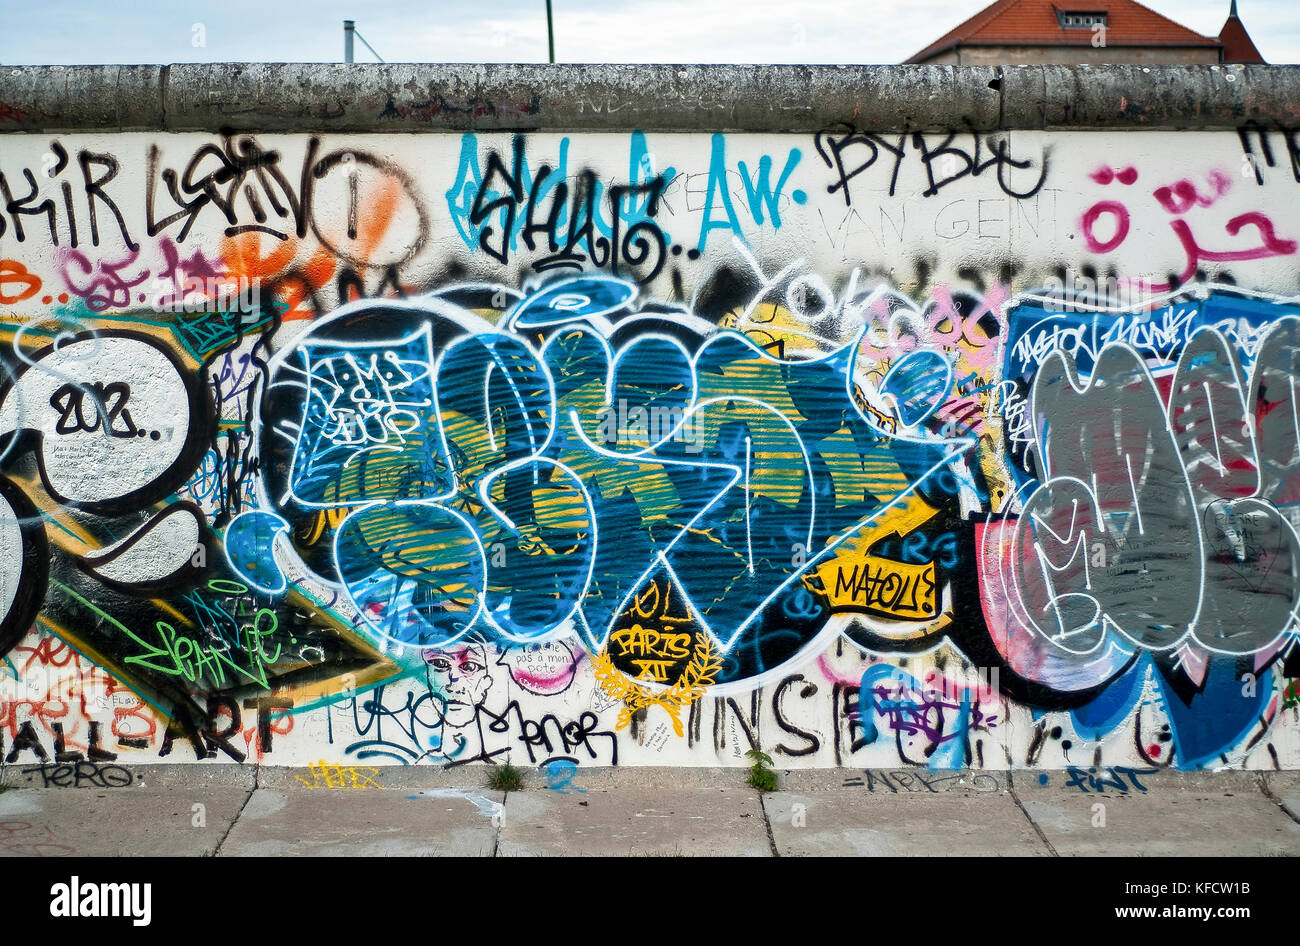 BERLIN-SEPTEMBER 26:The Berlin wall at the East side Gallery,Berlin,Germany,on September 26,2012. - Stock Image